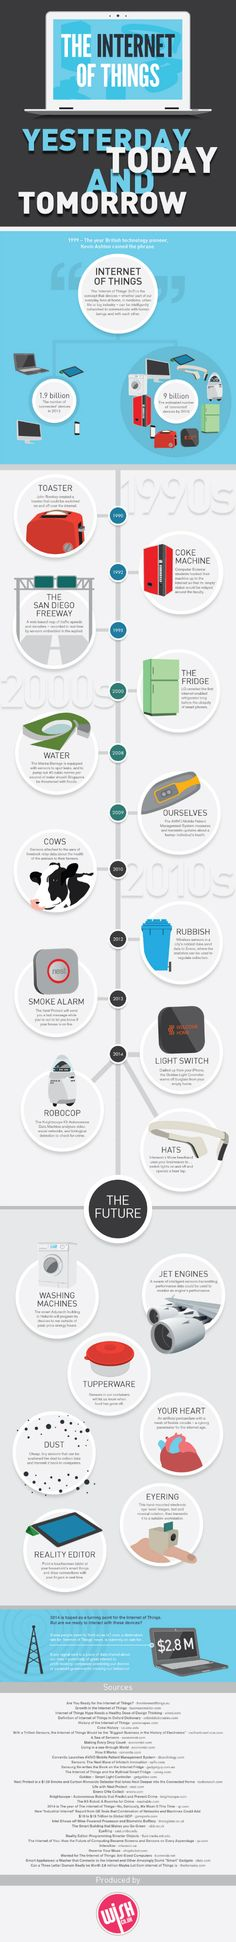 The Internet of Things: Yesterday, Today and Tomorrow Infographic Quantified Self, Smart Home Technology, Digital Technology, Textile Intelligent, Internet Of Things, Smart City, Yesterday And Today, Application Development, Cloud Computing